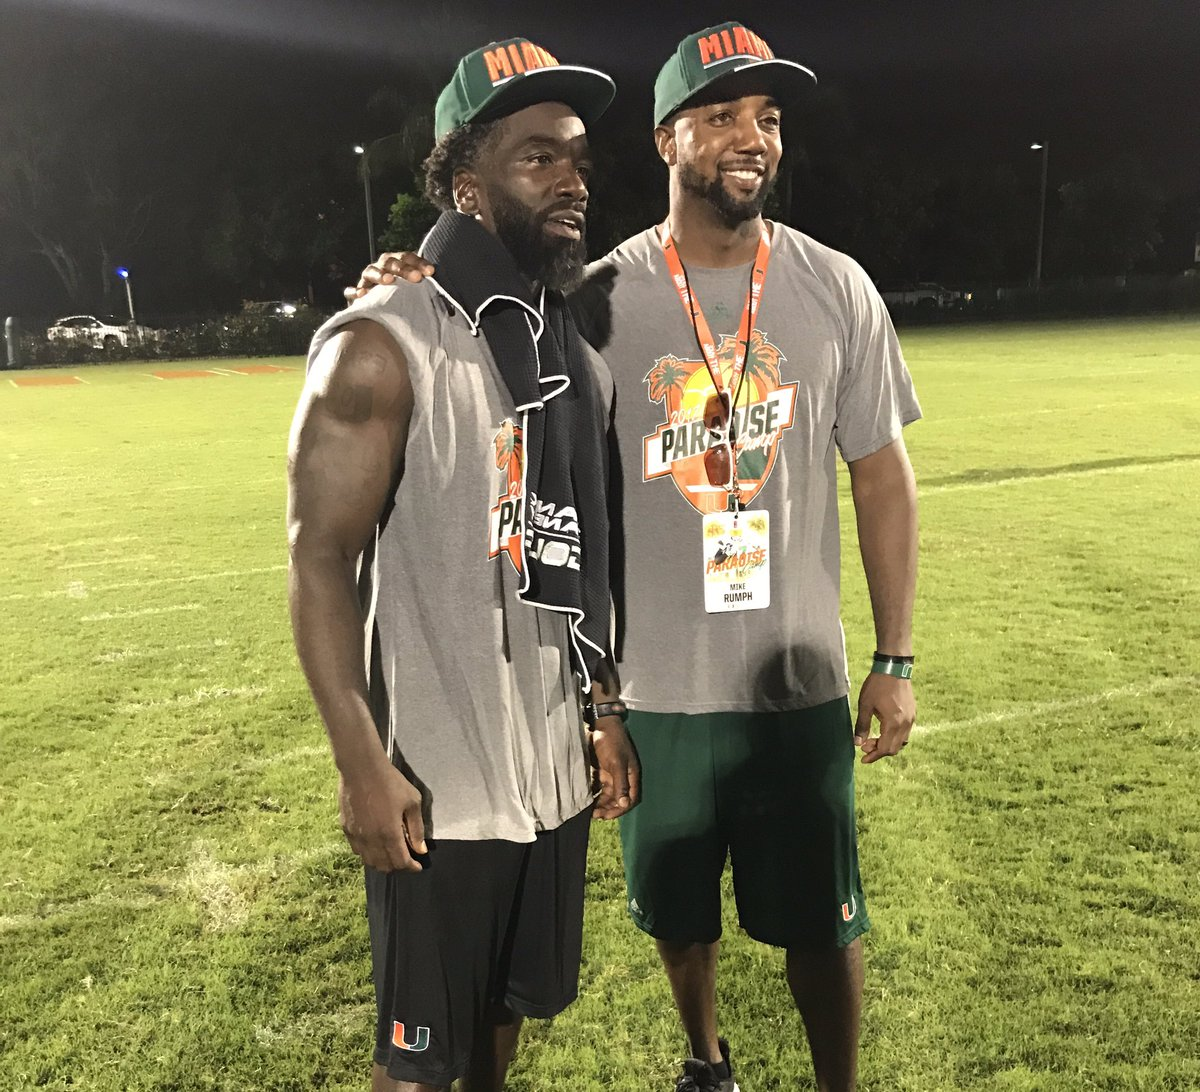 Ed Reed with @CoachRumph16. Two of the finest from DBU. https://t.co/hby3j8uRjf